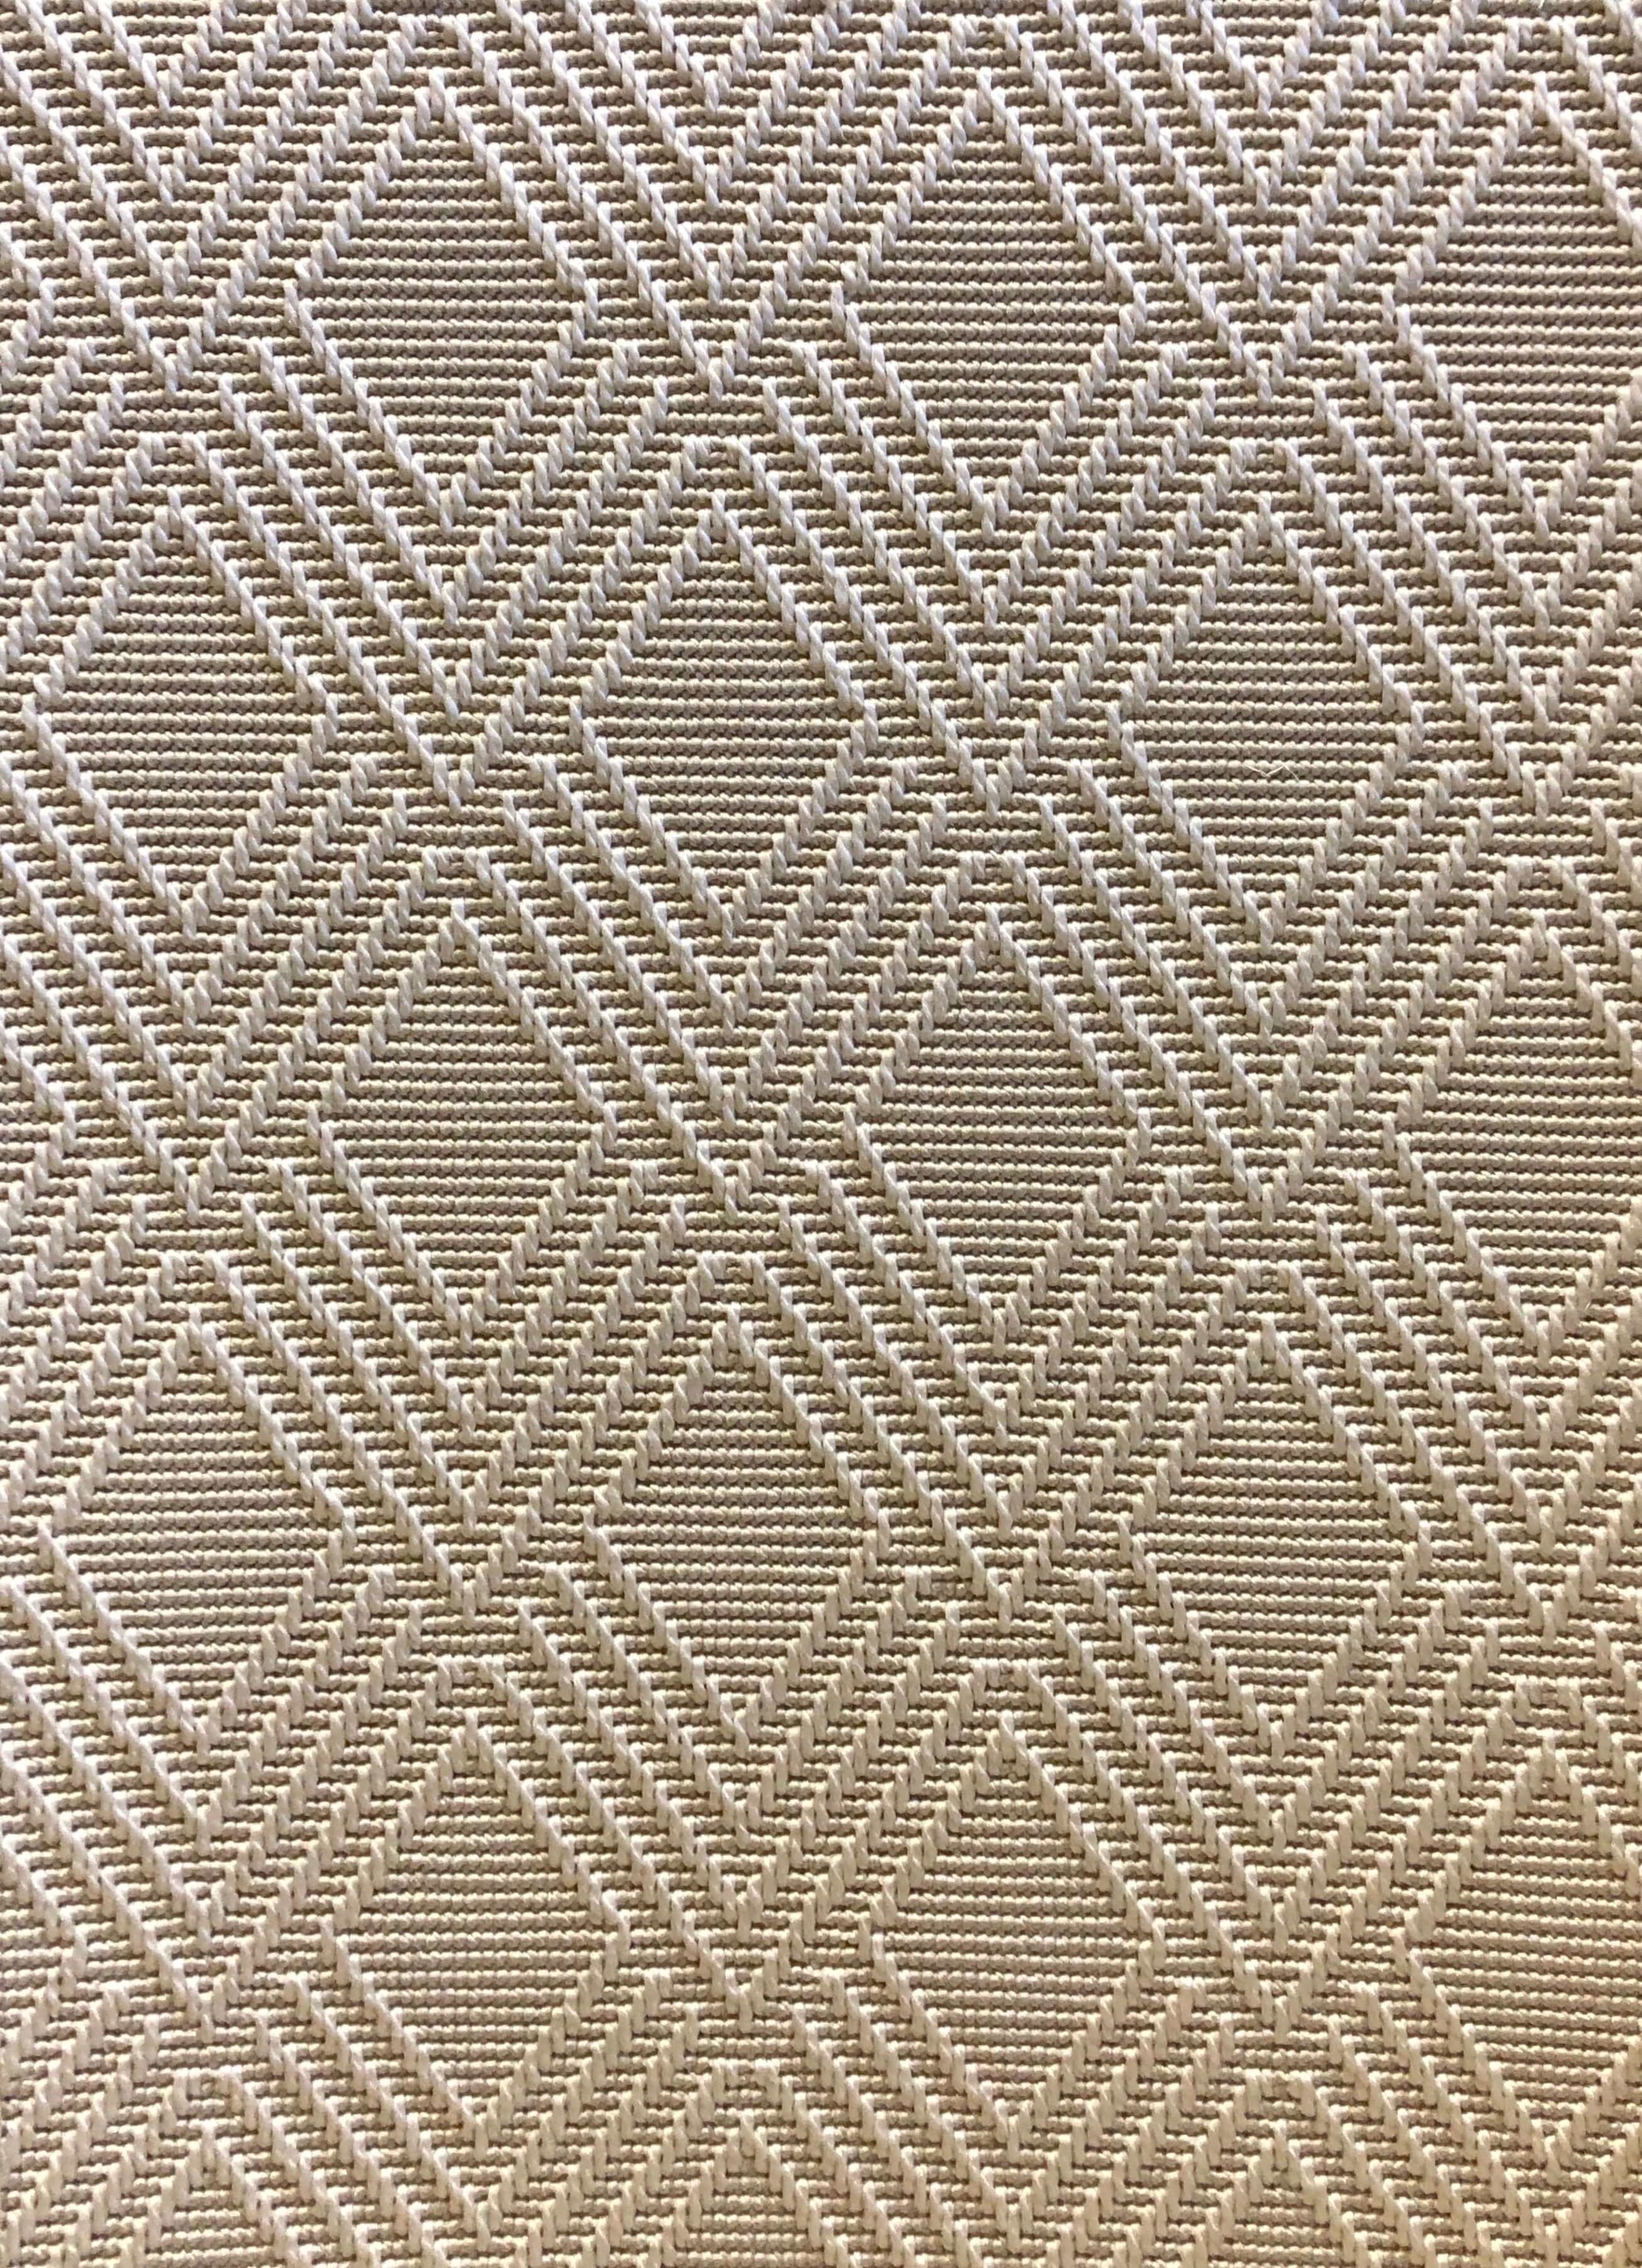 This carpet looks like a seagrass or sisal rug but is made of polypropylene and has none of the problems that some people have with natural fiber products.